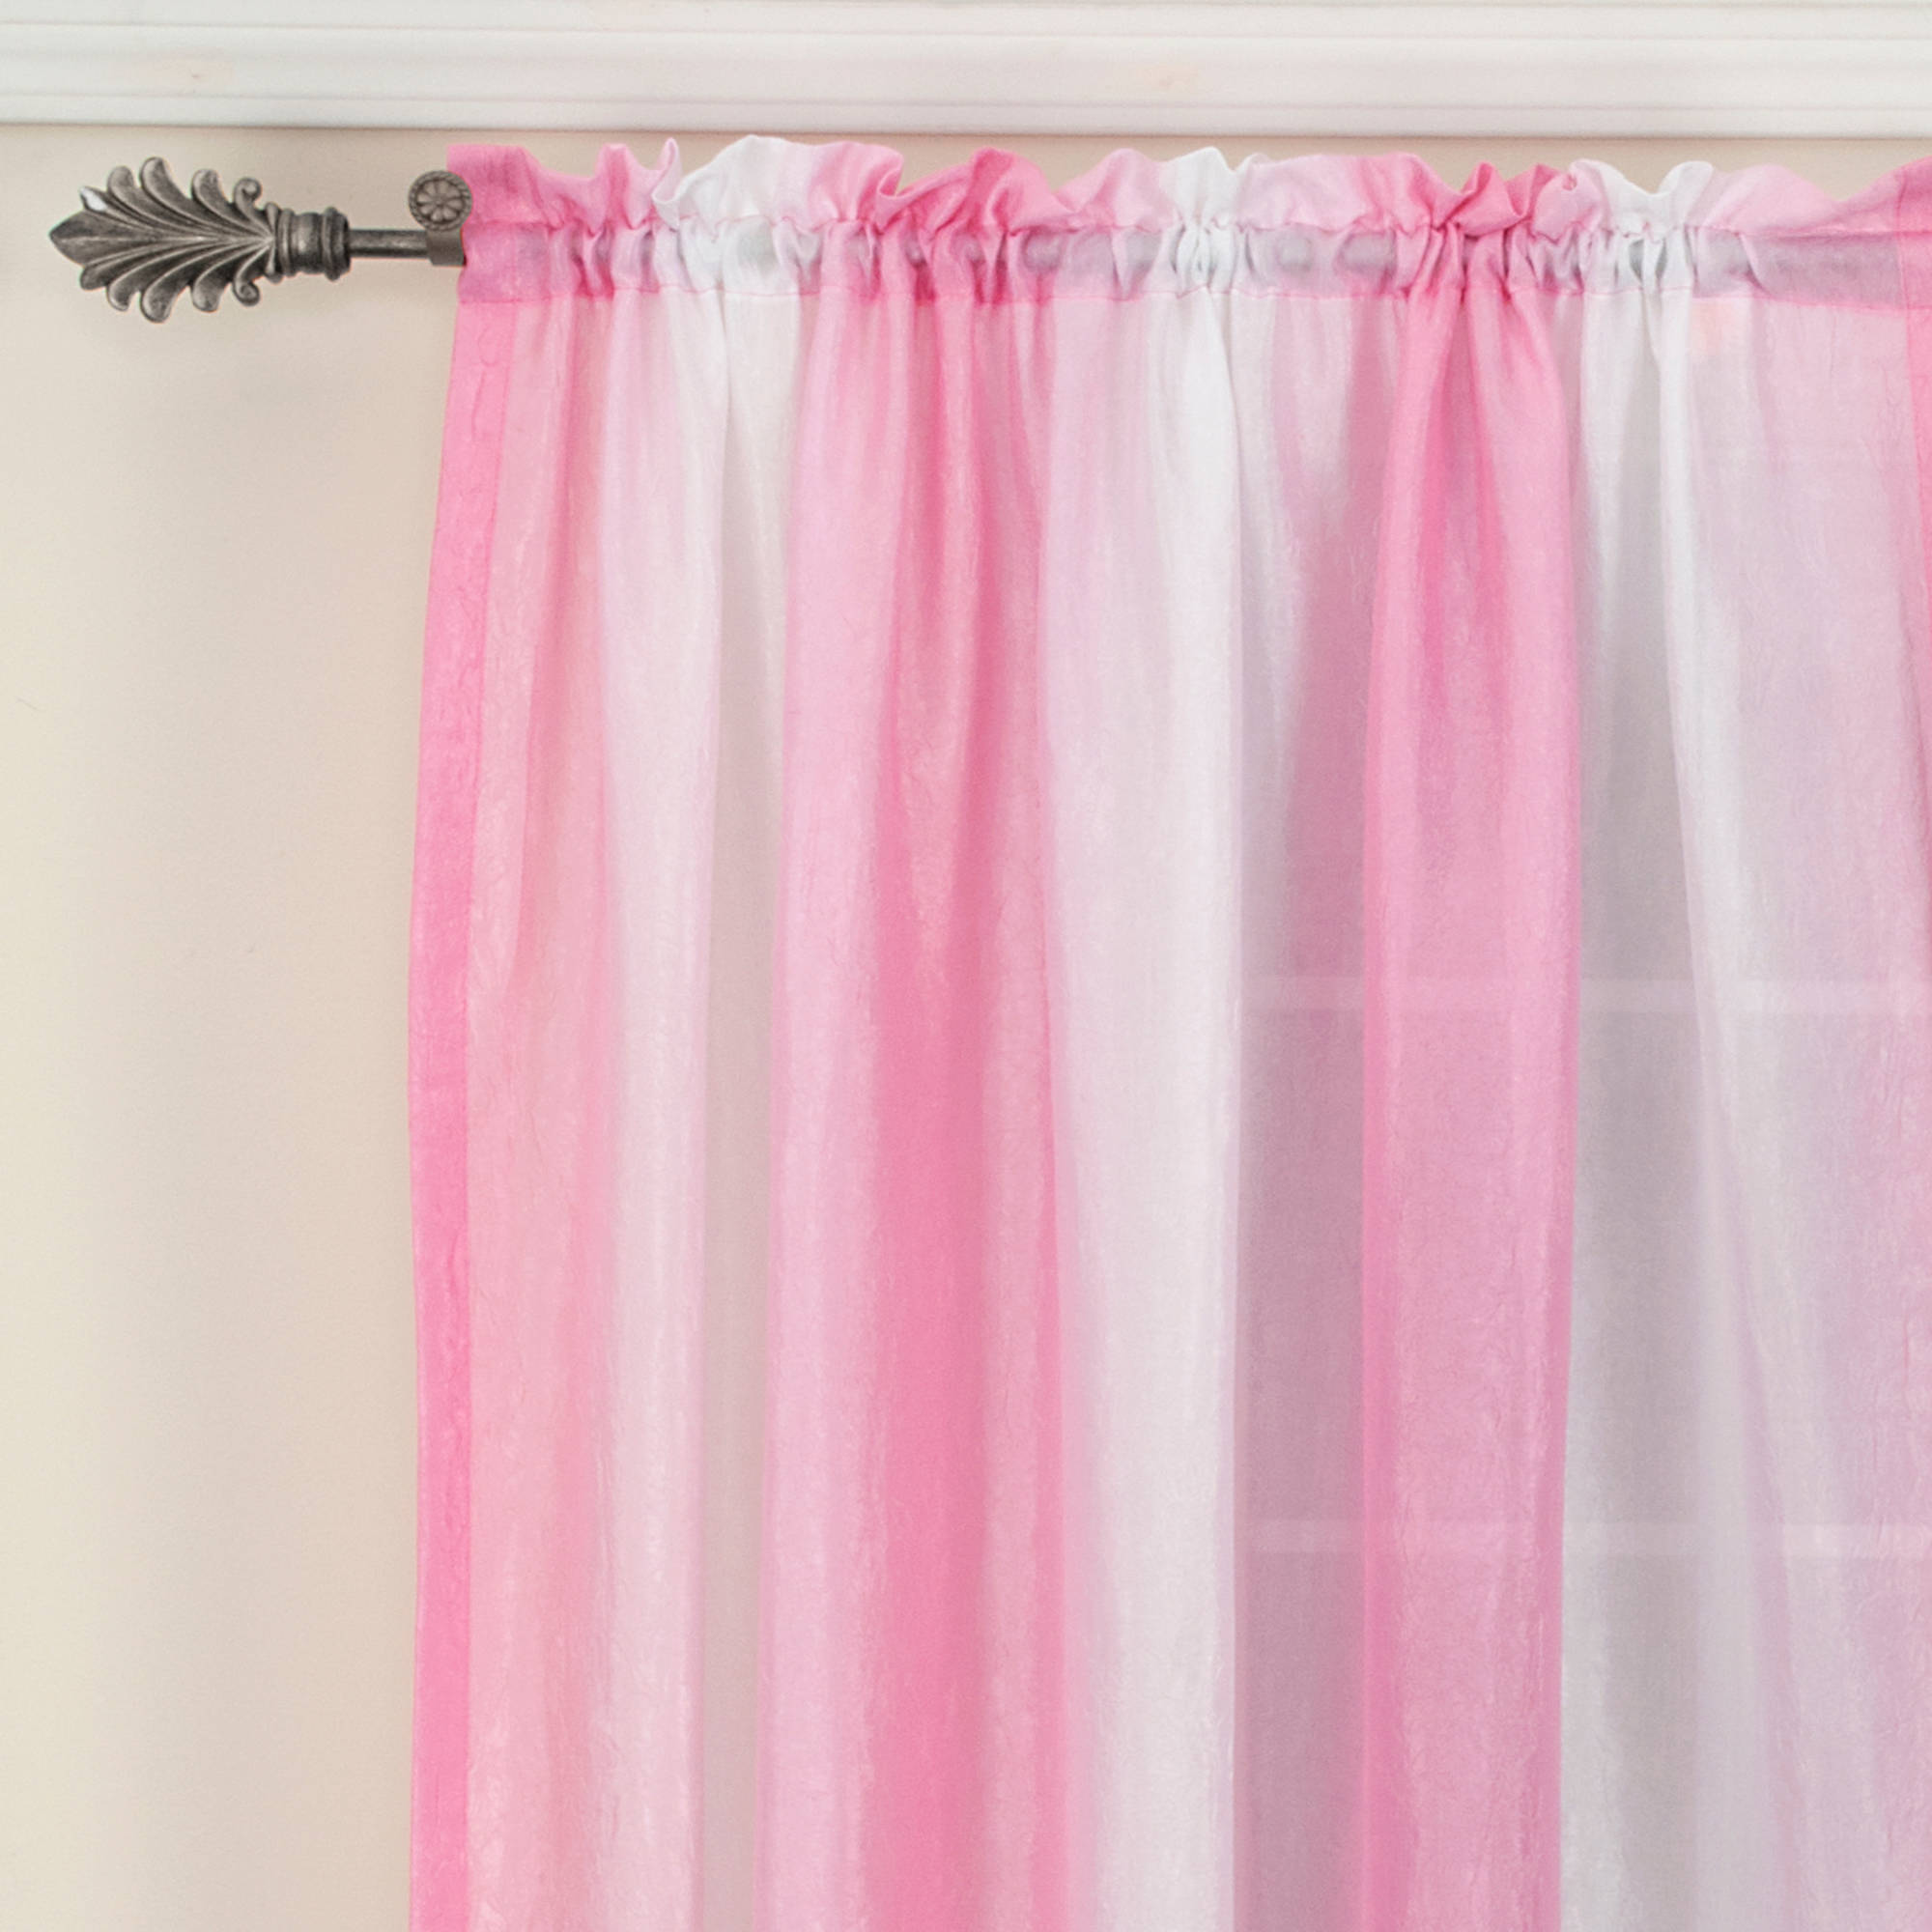 Your Zone Peace and Love Girls Bedroom Curtain Panel Set - Walmart.com for Ombre Curtains Pink  299kxo